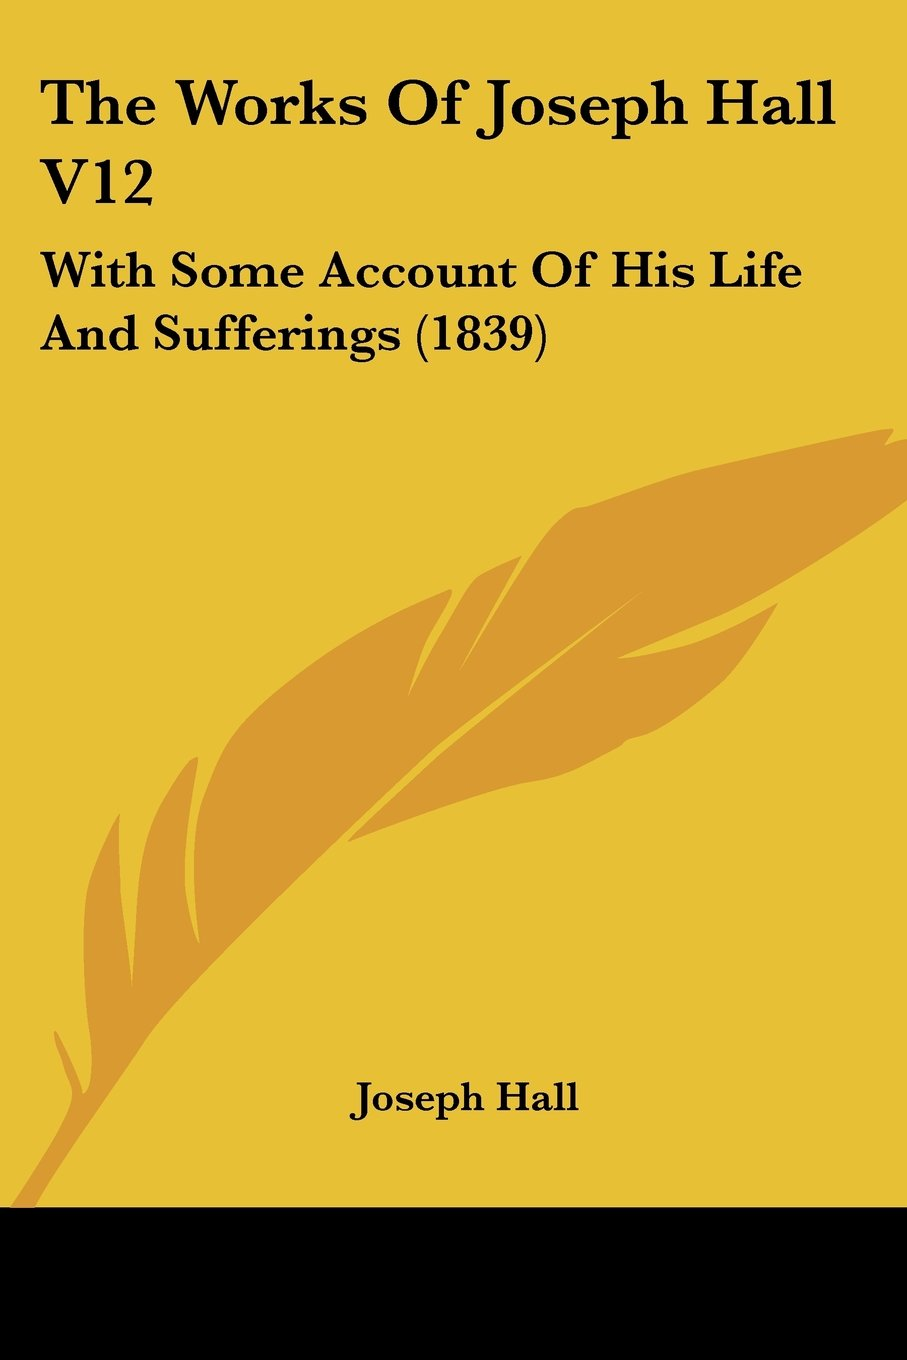 Download The Works Of Joseph Hall V12: With Some Account Of His Life And Sufferings (1839) pdf